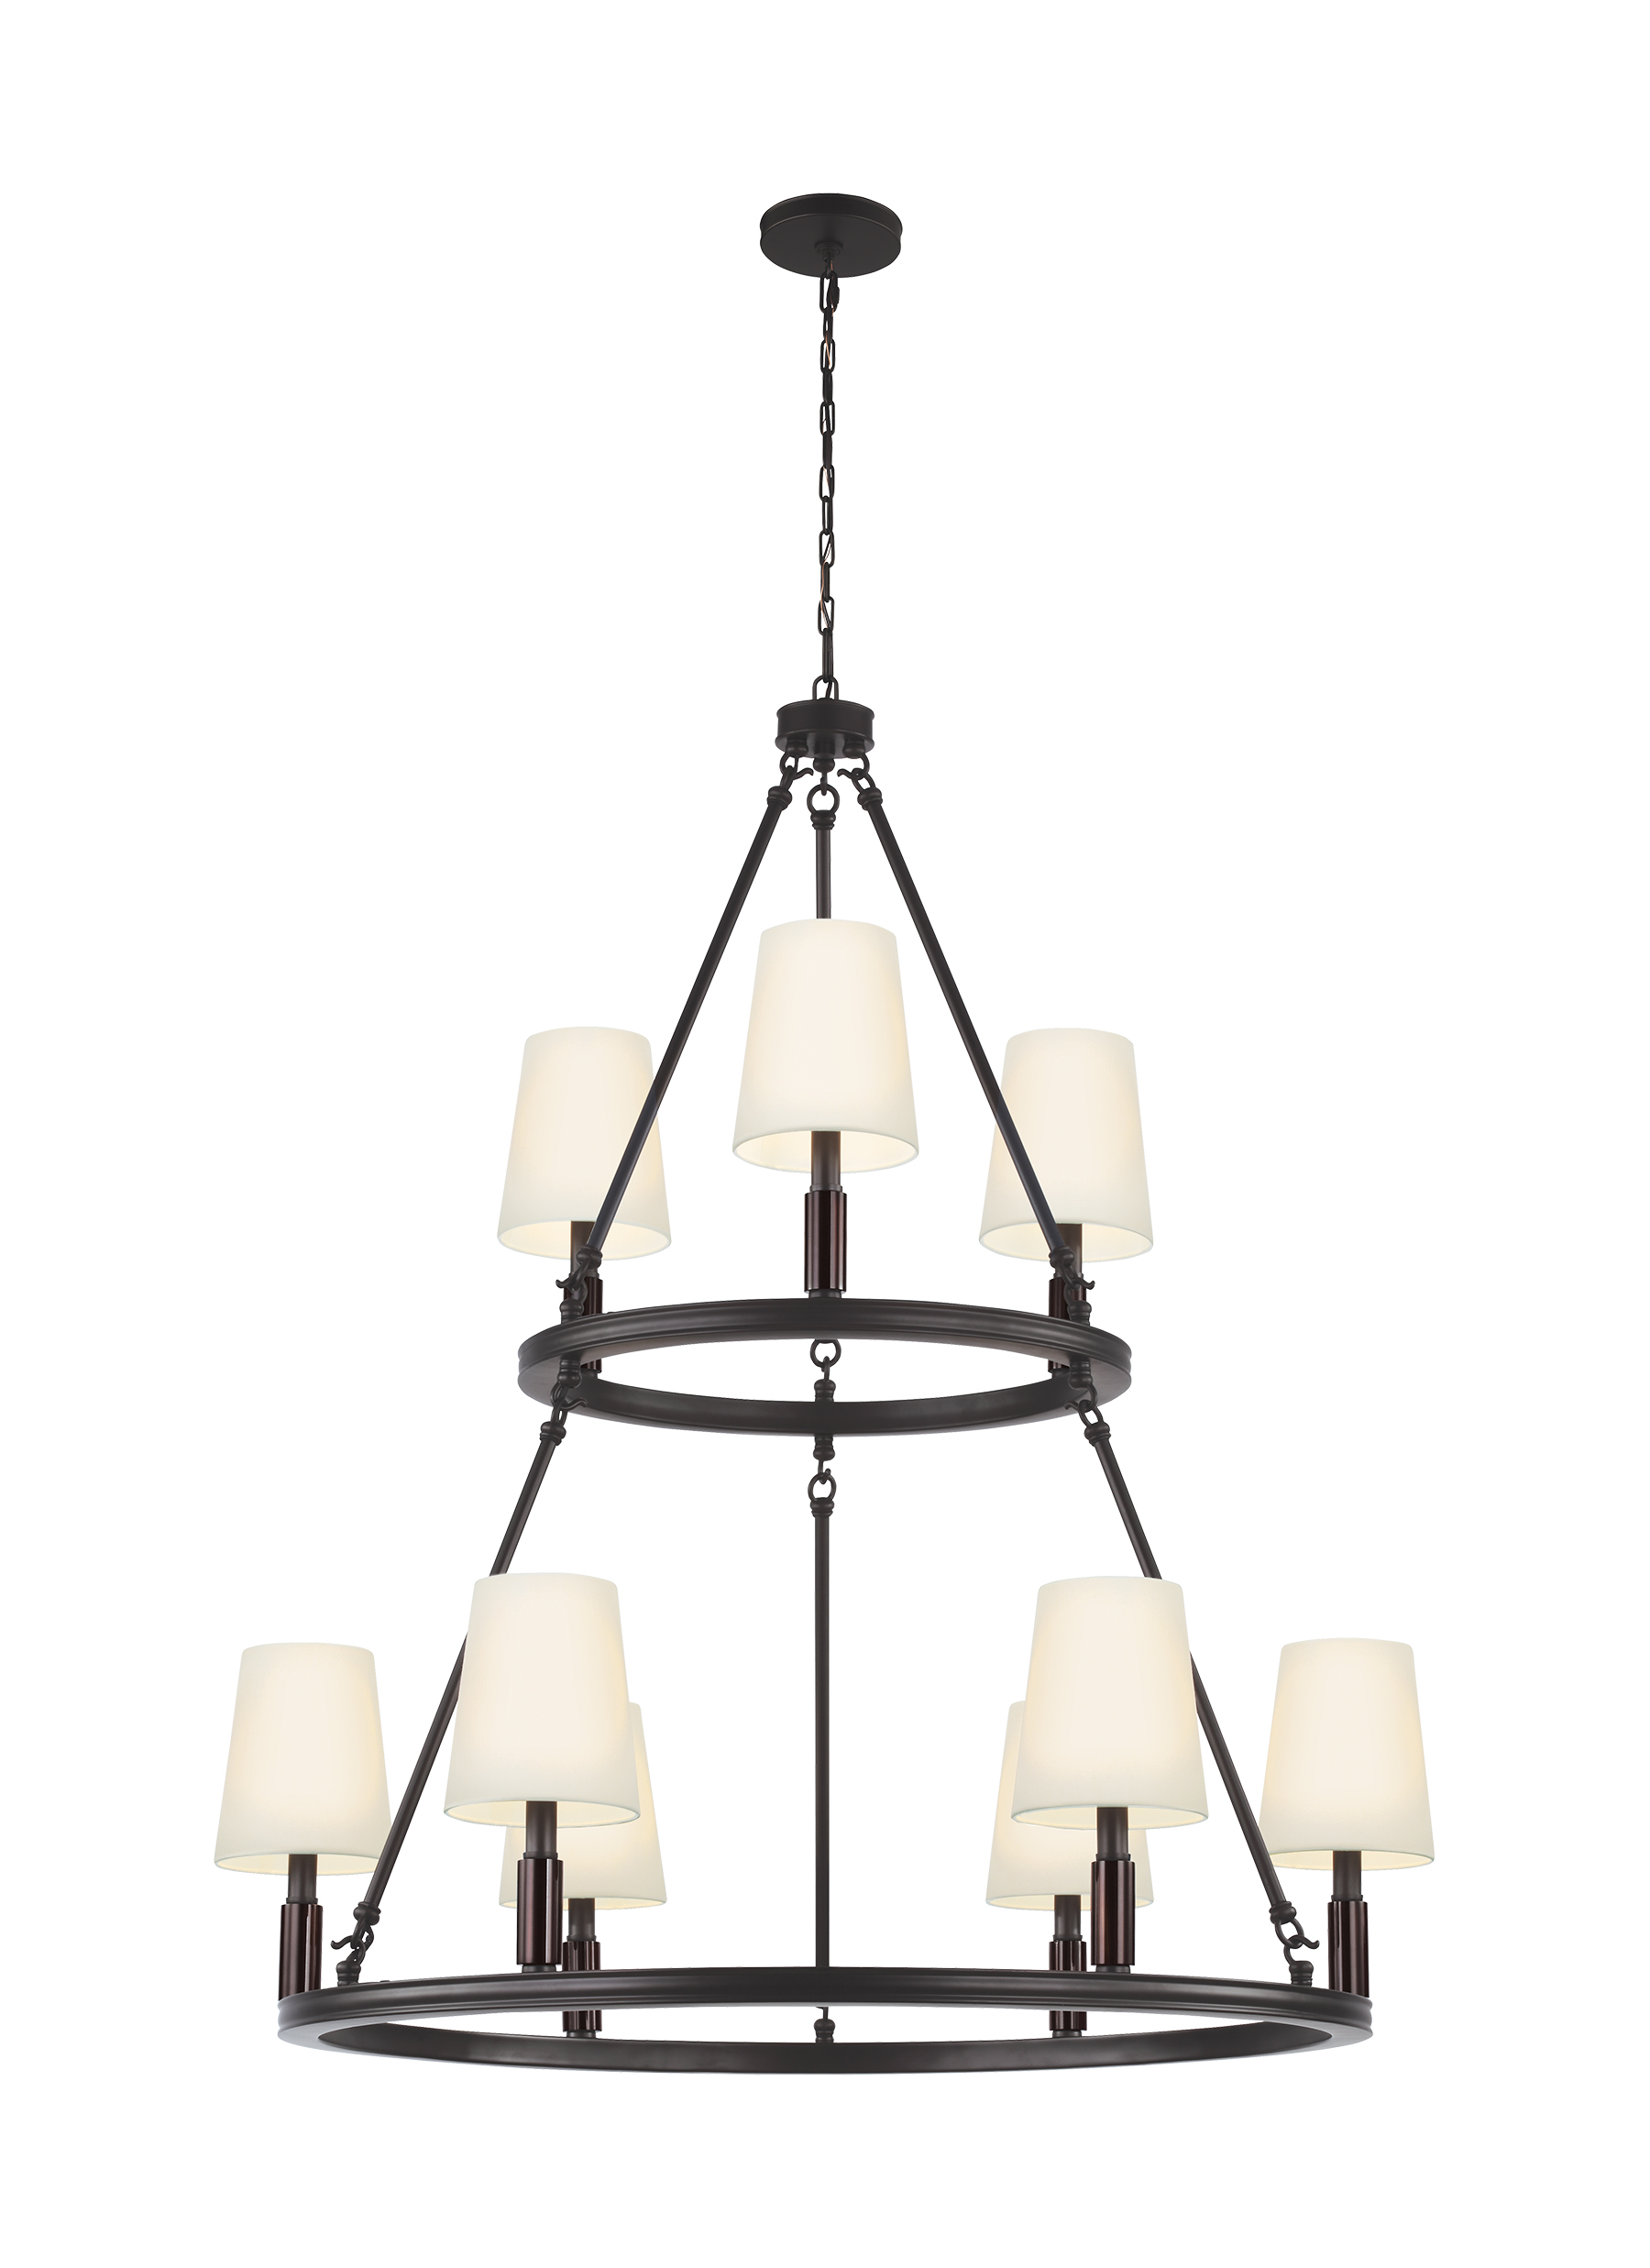 productdetail light zoom hover company and sale chandelier bronze four on to htm currey broxton pyrite orb